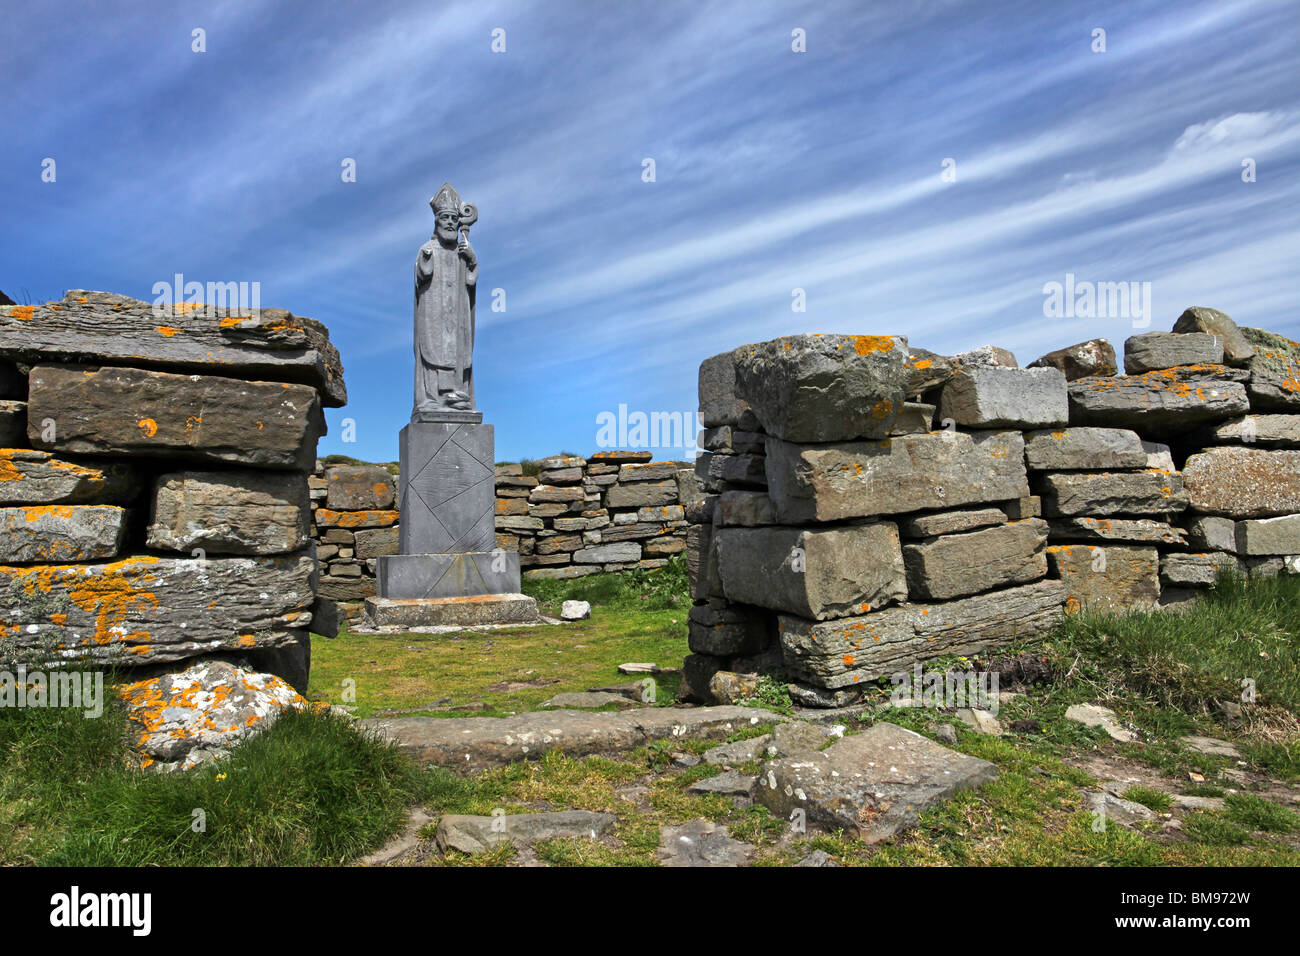 St Patrick's statue on the ruins of an old church at Downpatrick Head, Co Mayo, Ireland. - Stock Image